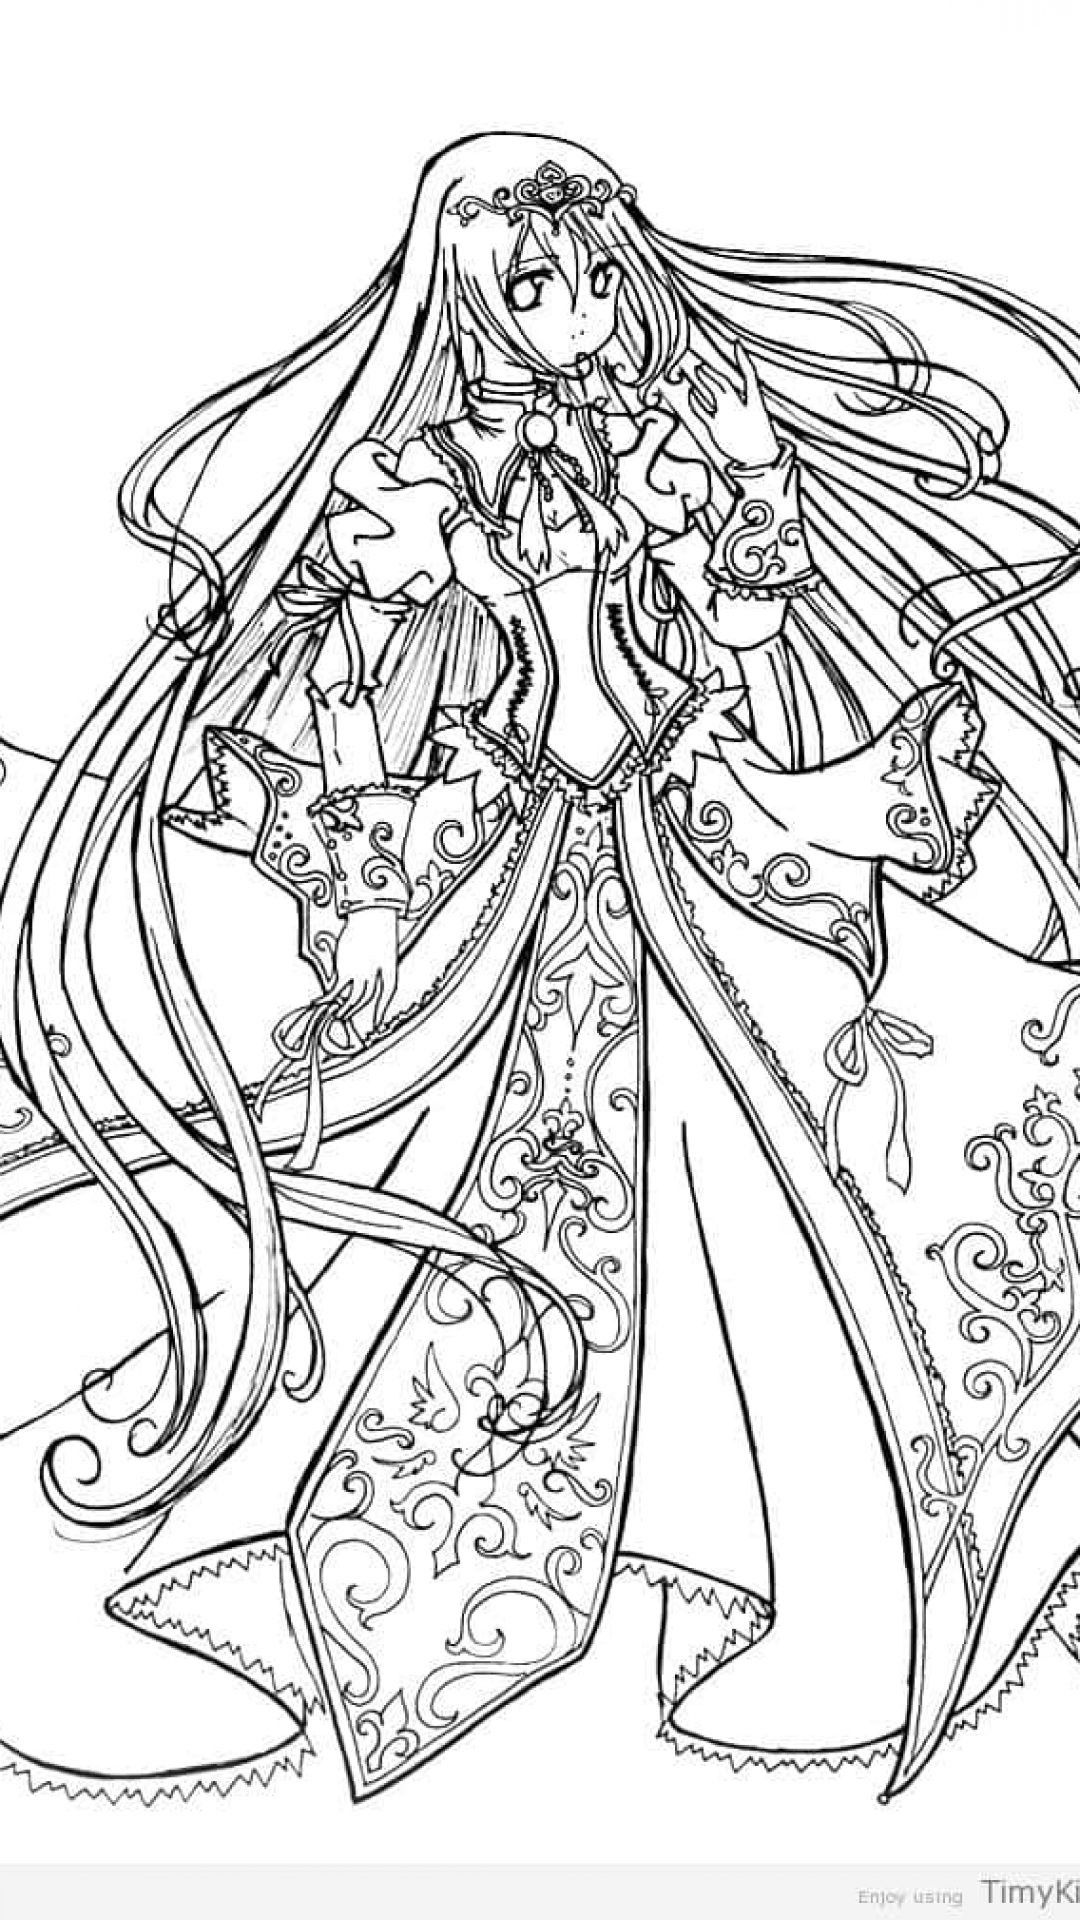 Coloring Page Anime Princess Through The Thousand Photographs On The Net Regarding Coloring Page Ani Princess Coloring Pages Princess Coloring Coloring Pages